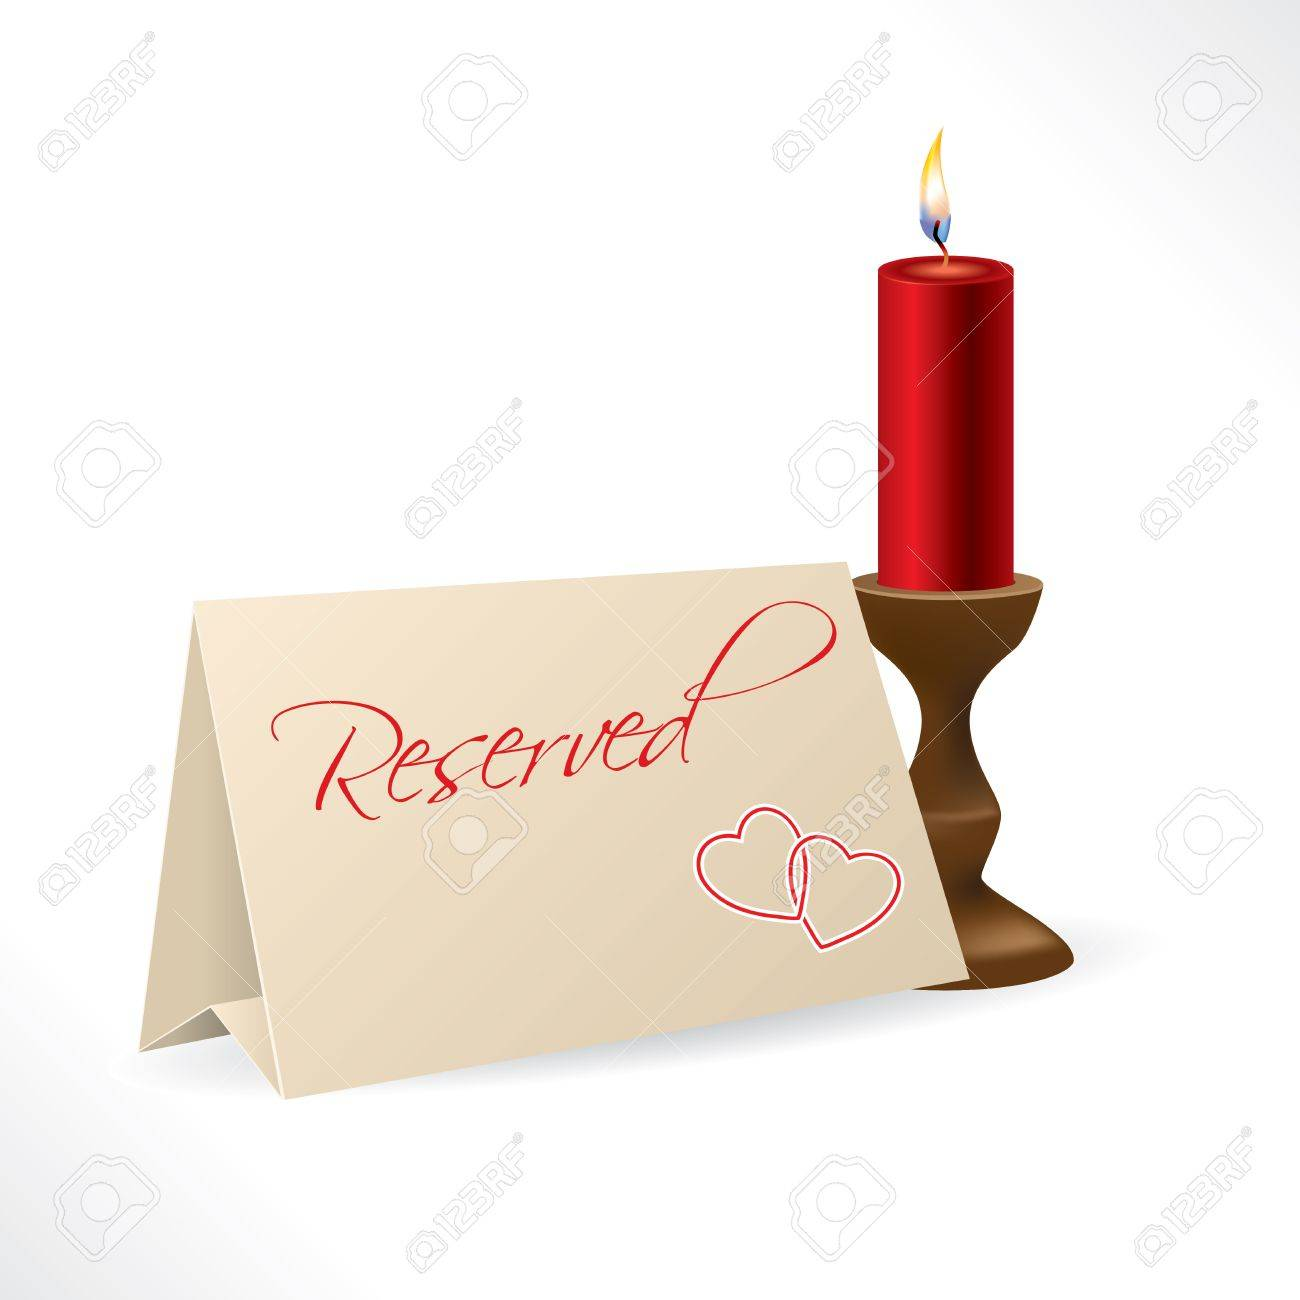 Reserved note with hearts and burning red candle Stock Vector - 17345296